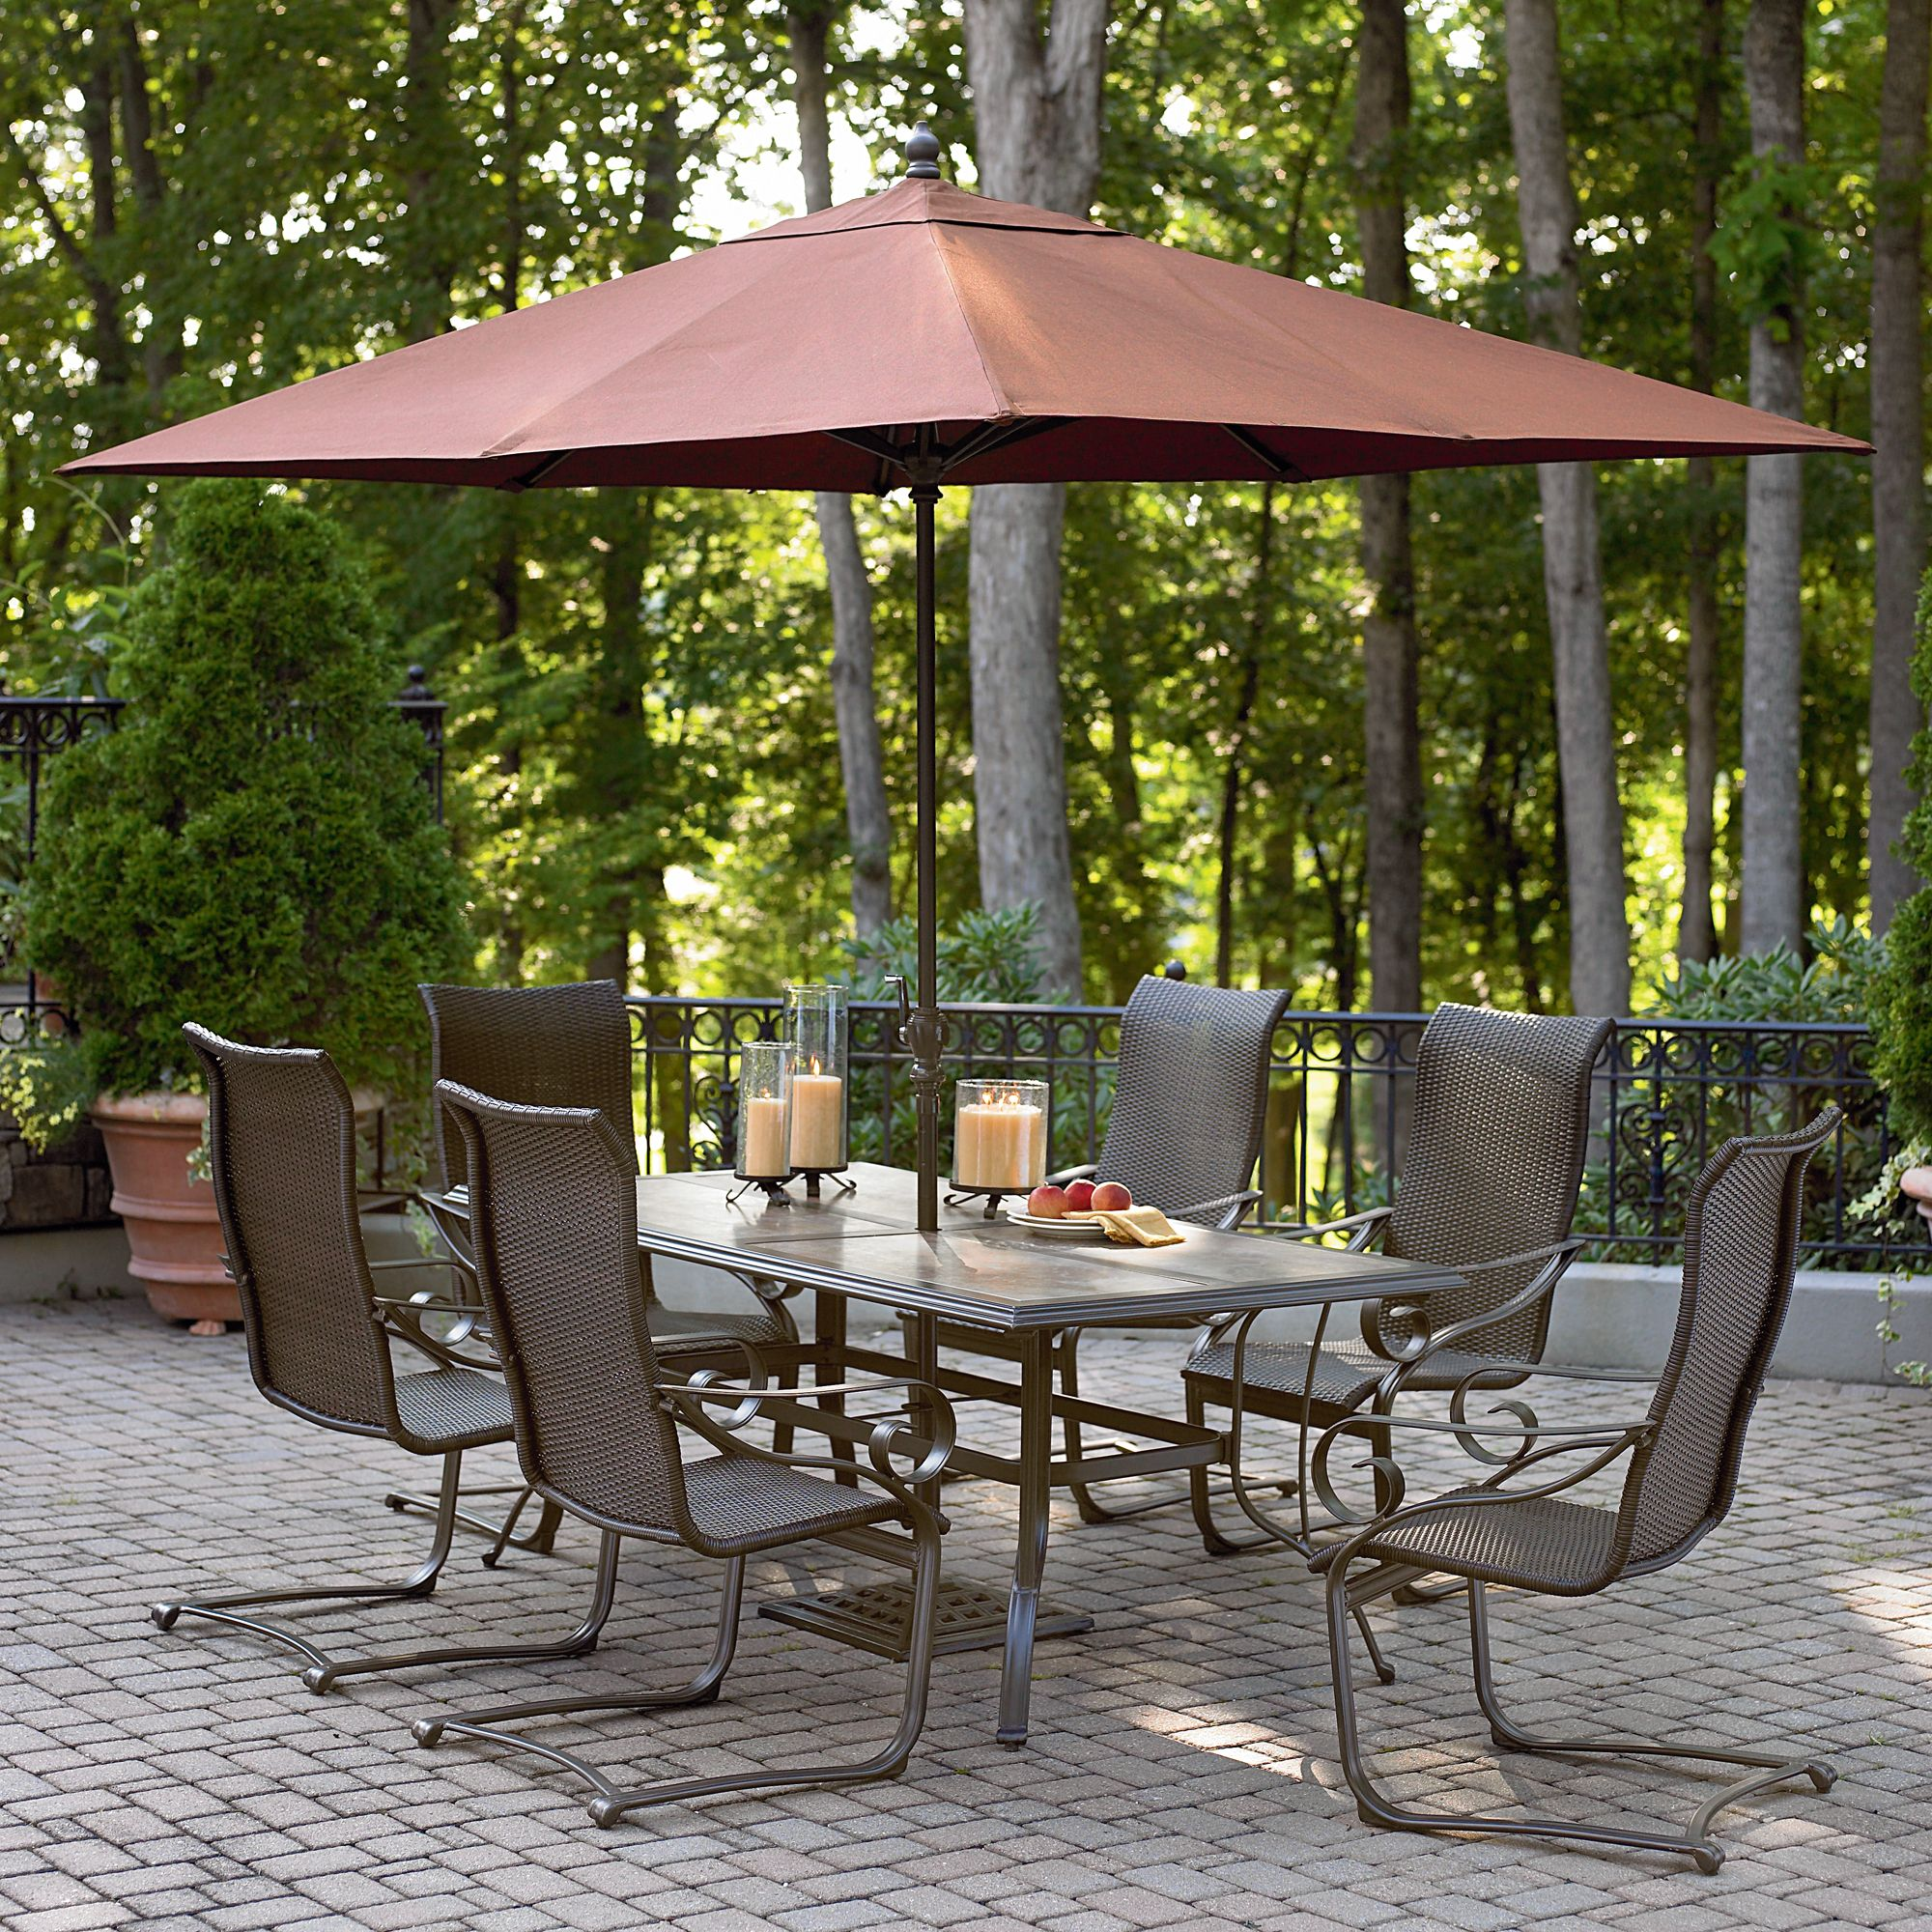 Garden Oasis Essex 9 Ft H Umbrella Outdoor Living Patio Furniture Patio Umbrellas Bases - Garden Furniture Clearance Parasols